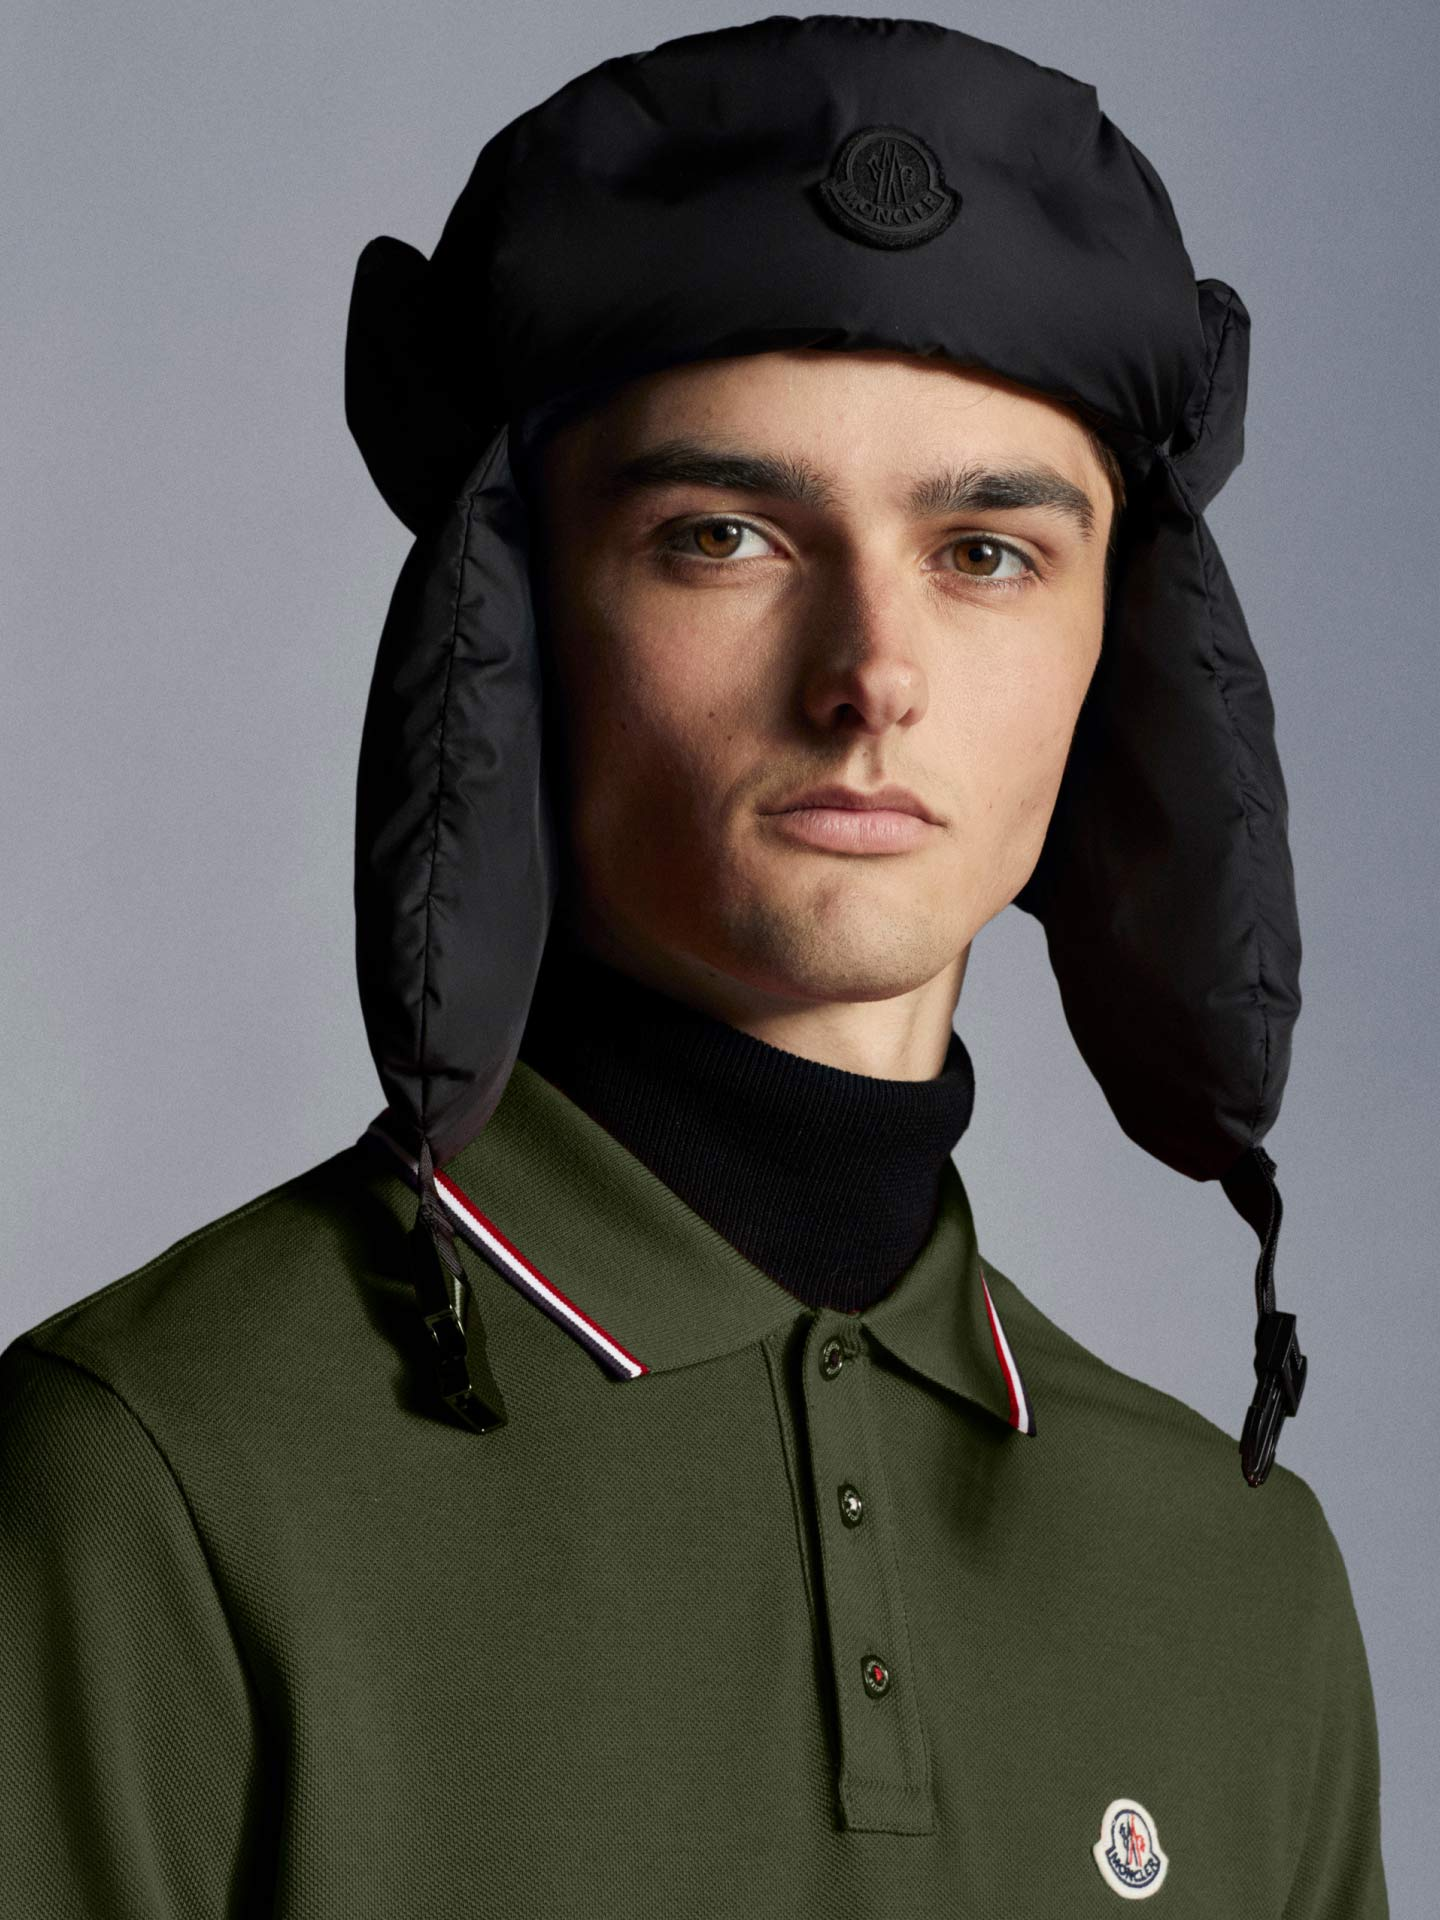 A man wearing a green Moncler polo and a black hat